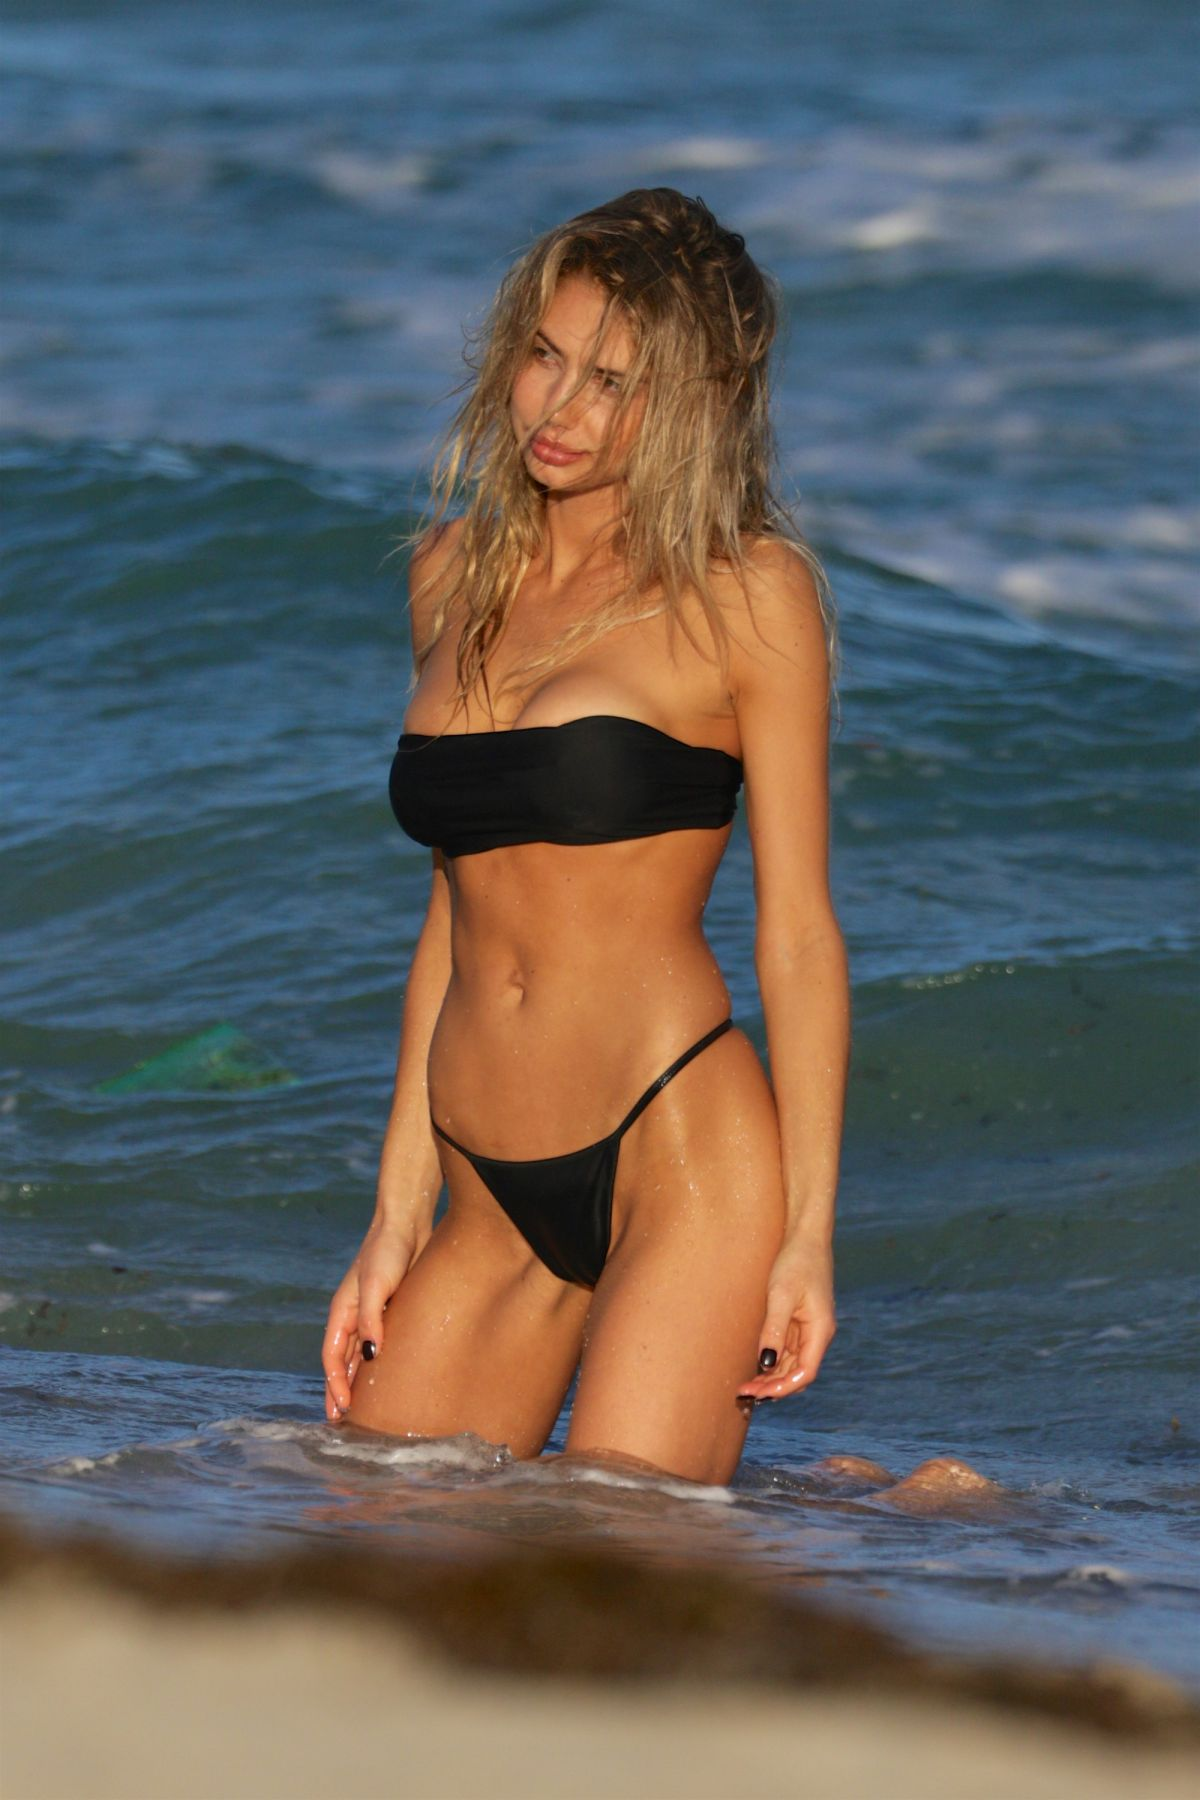 SAHARA RAY in Bbikini on the Seof of a Photoshoot in Miami Beach 12/01/2015